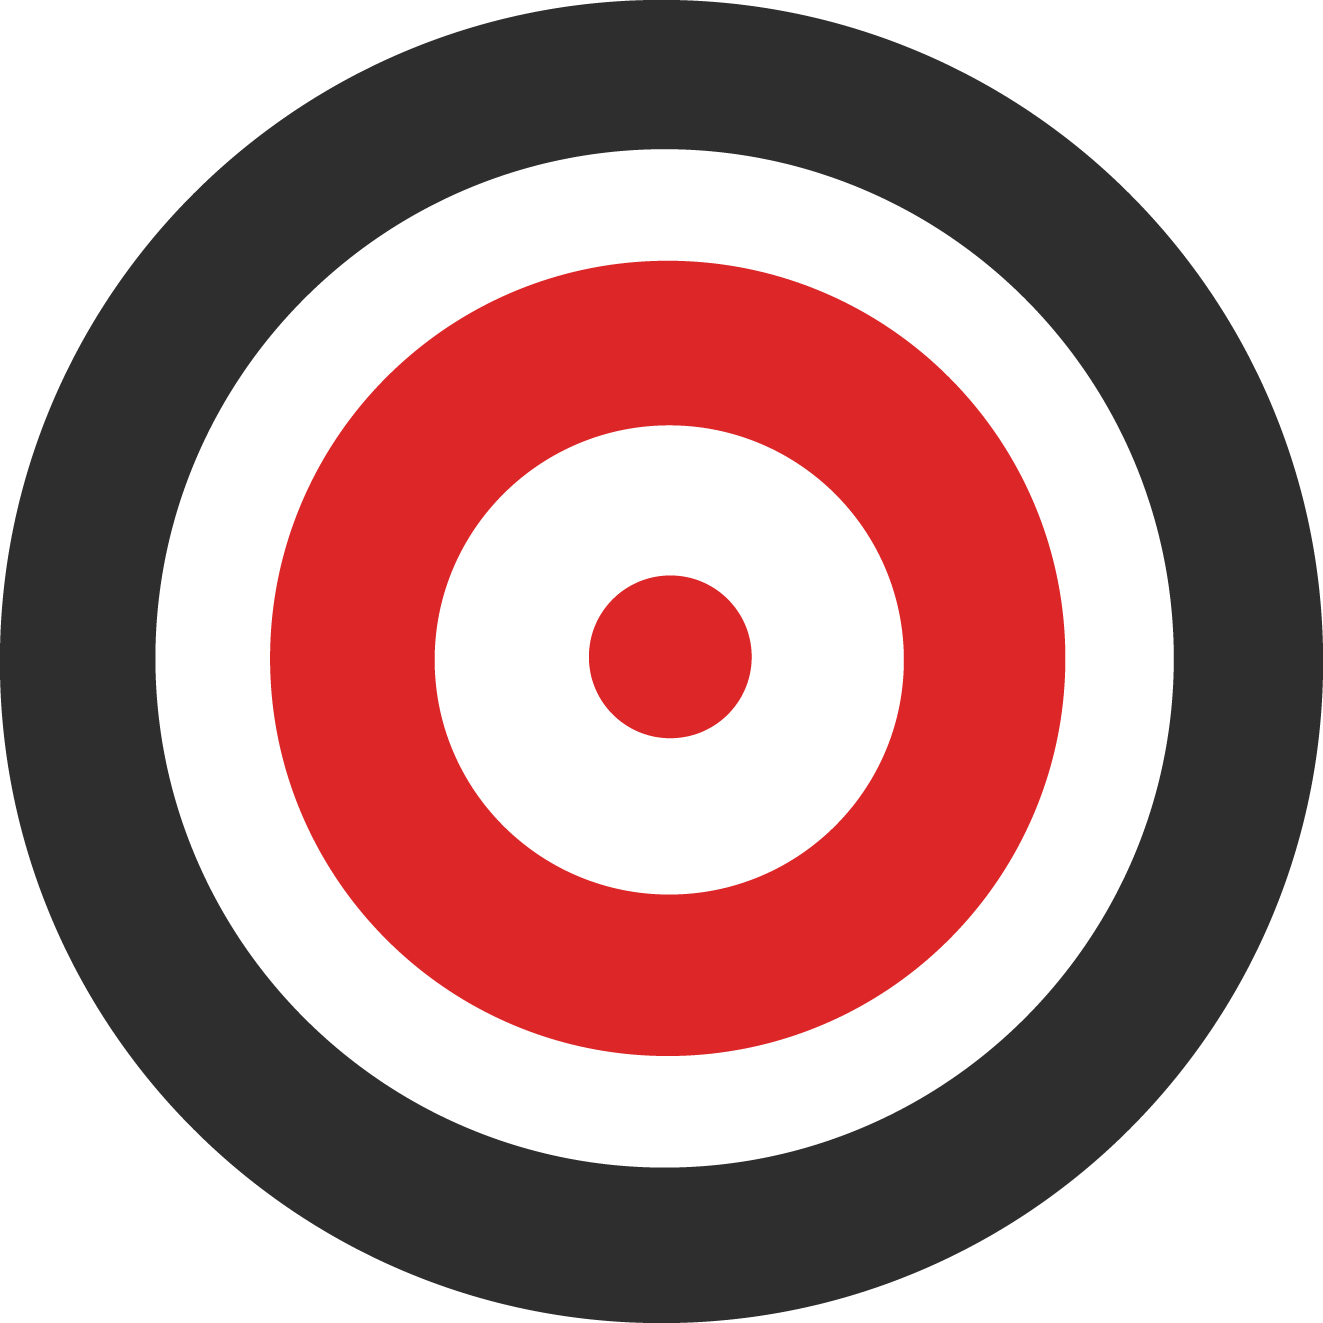 Target png #4537 - Free Icons and PNG Backgrounds